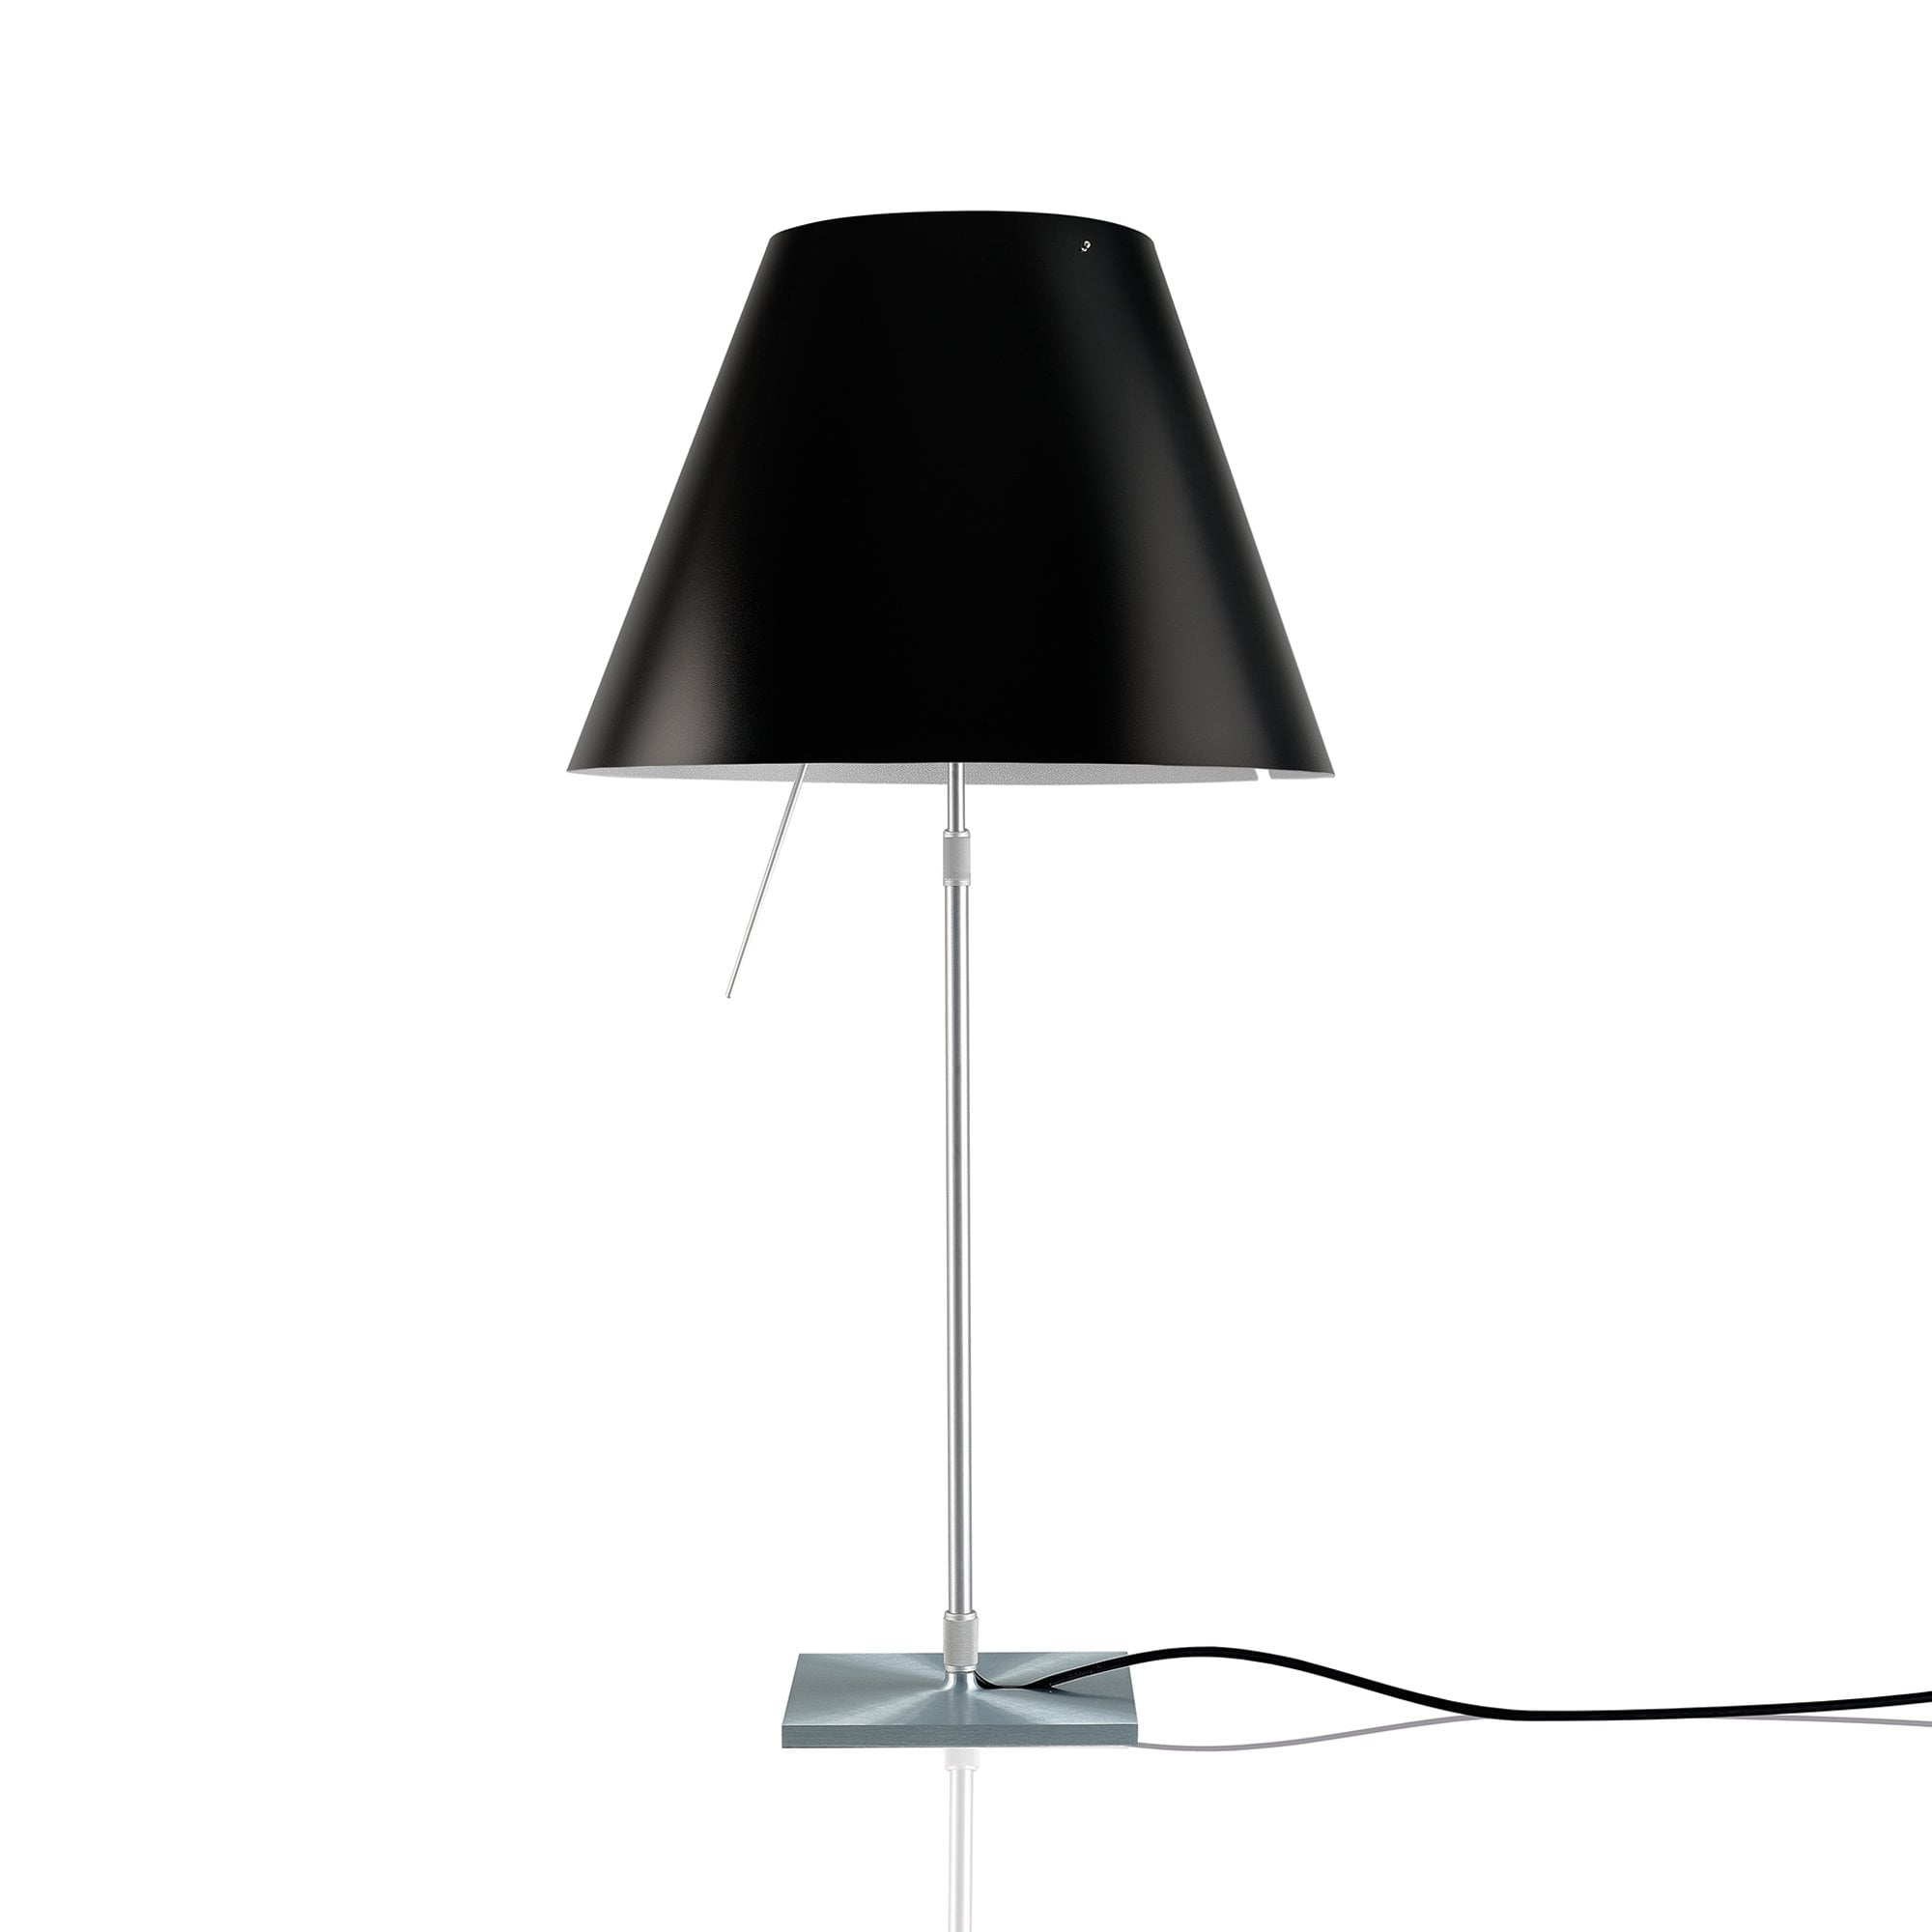 COSTANZA TABLE LAMP body with on/off switch alu and Black Lampshade finish